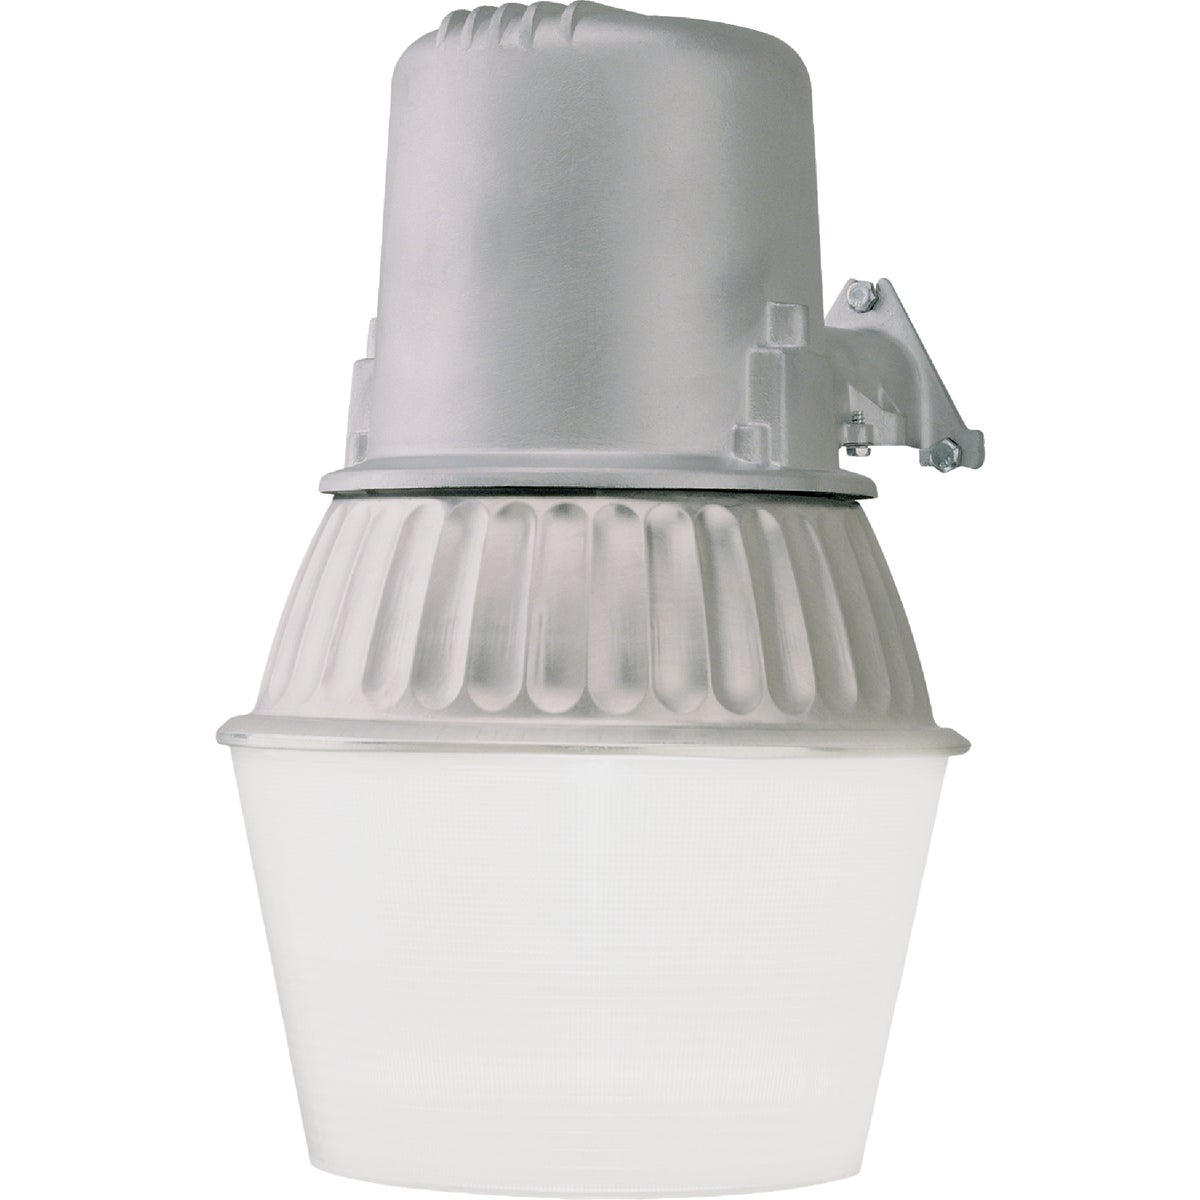 65W FLUOR AREA LIGHT - AL6501FL by Cooper Lighting